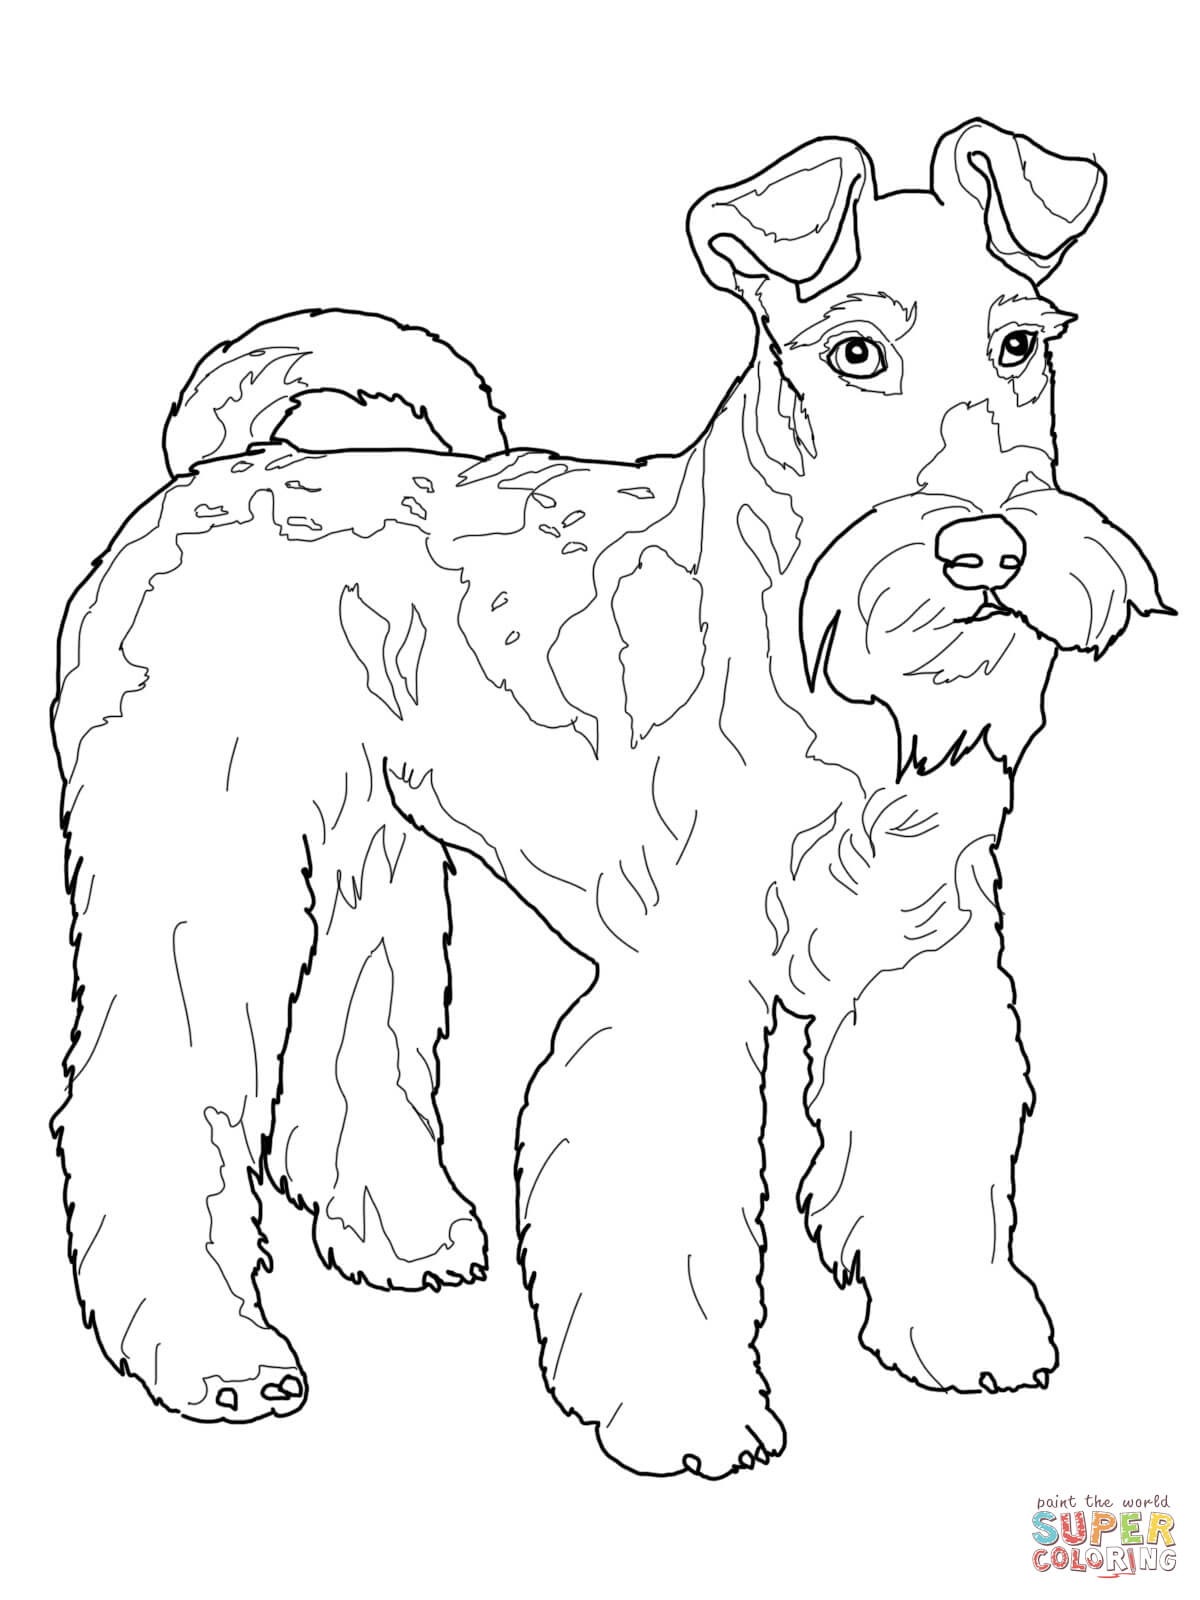 Wire Fox Terrier coloring page | Free Printable Coloring Pages